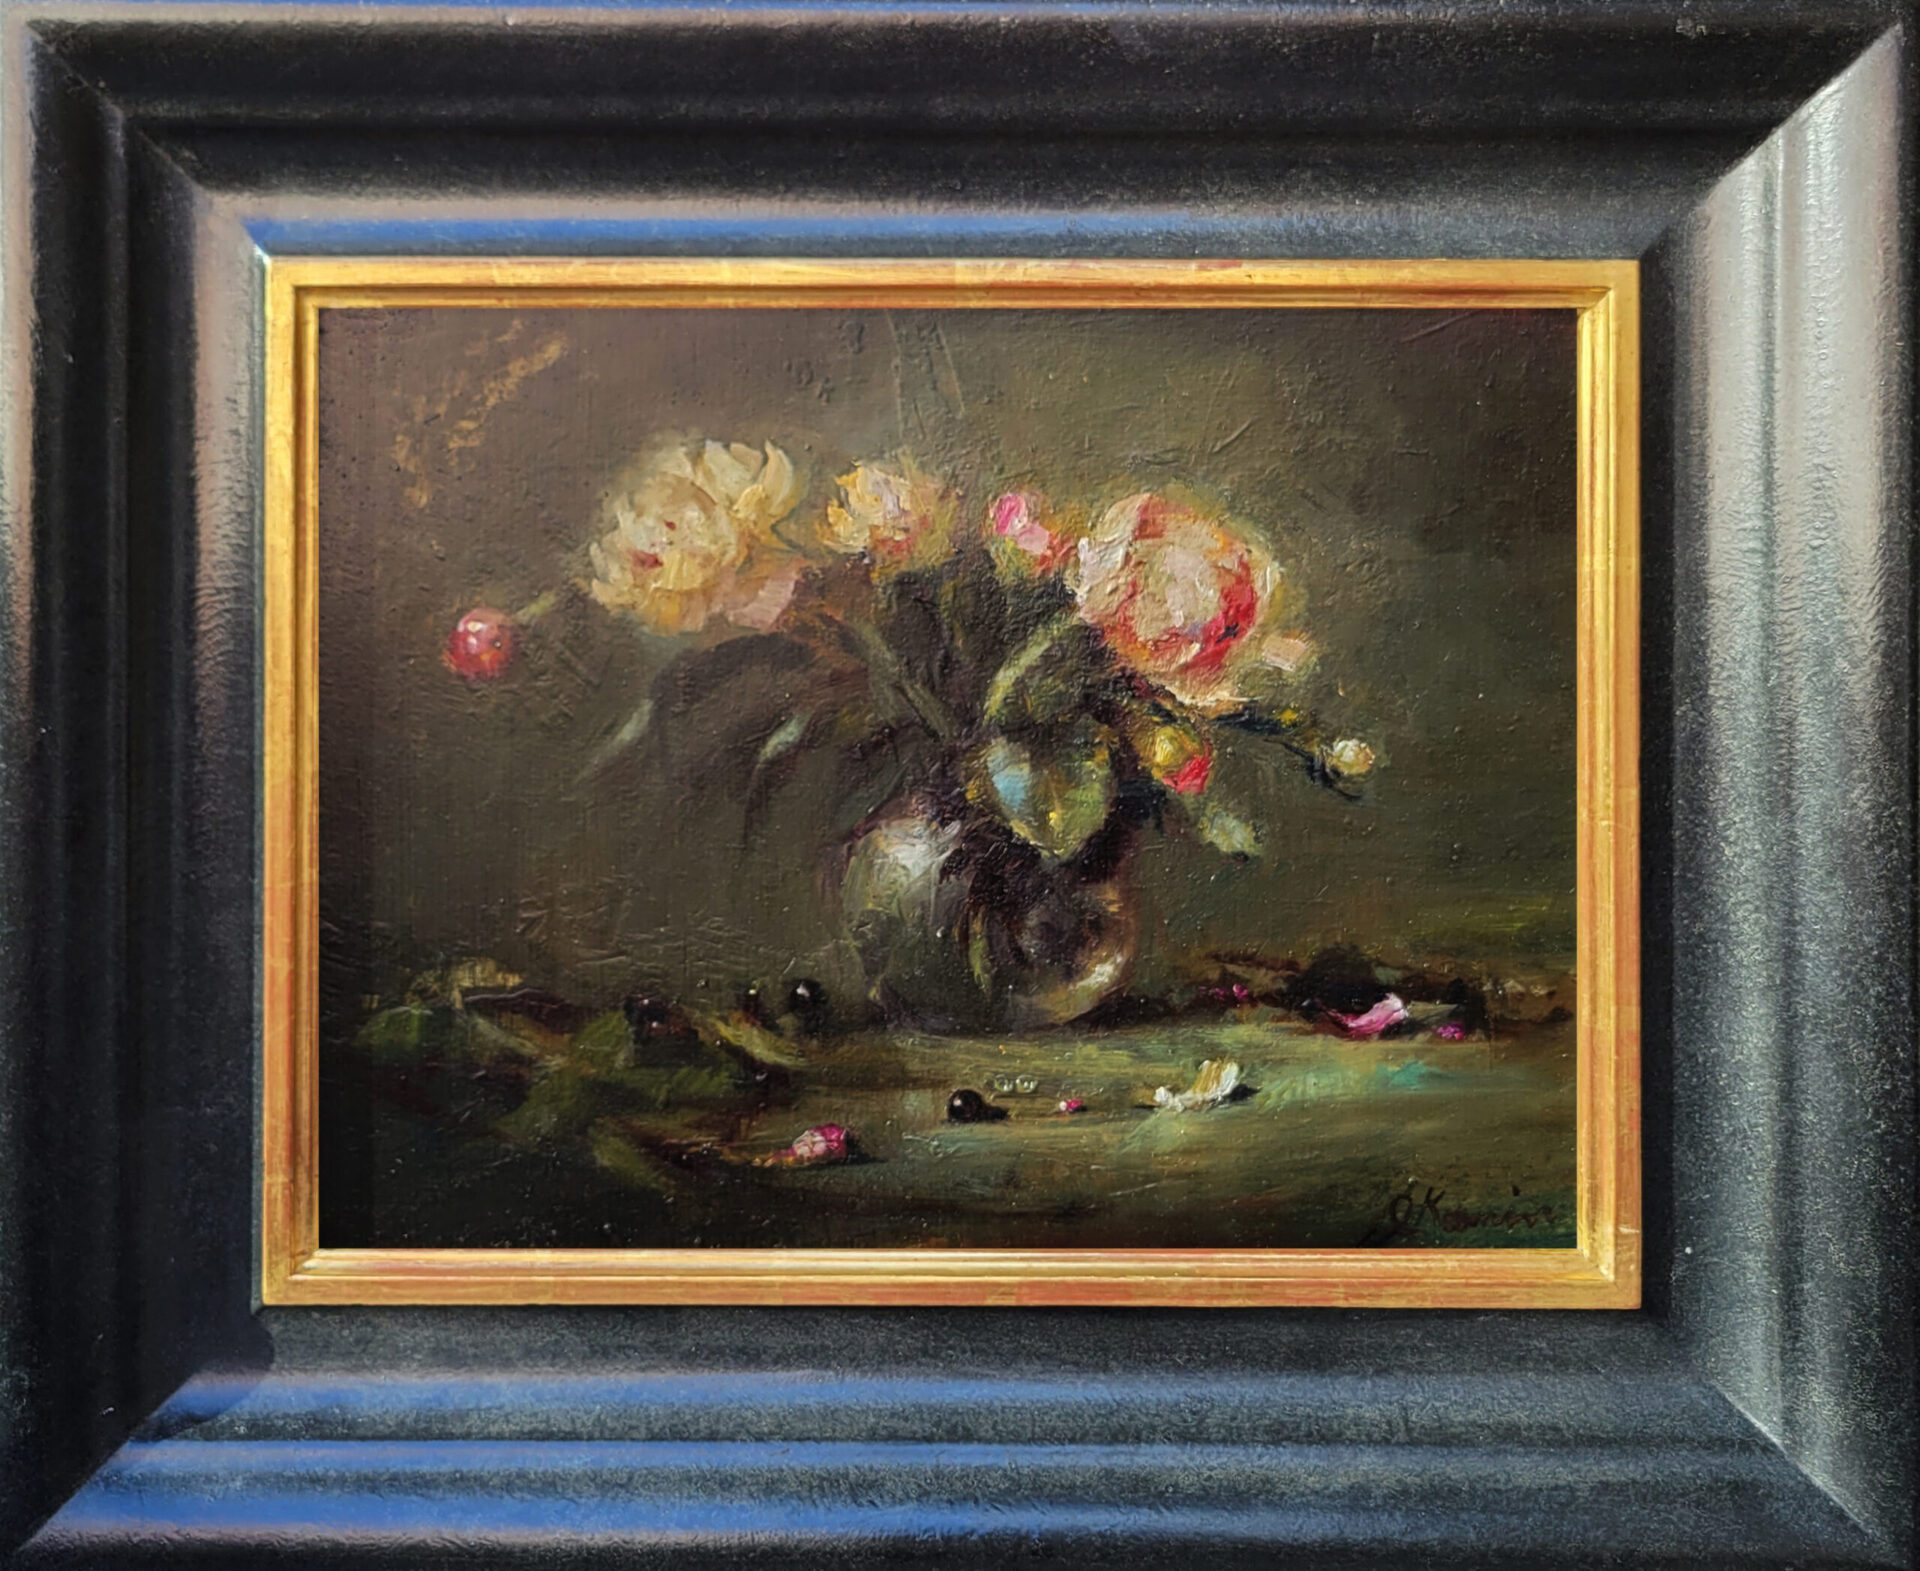 Kamin_Jacqueline_Peonies_in_Glass_12x16_Frame